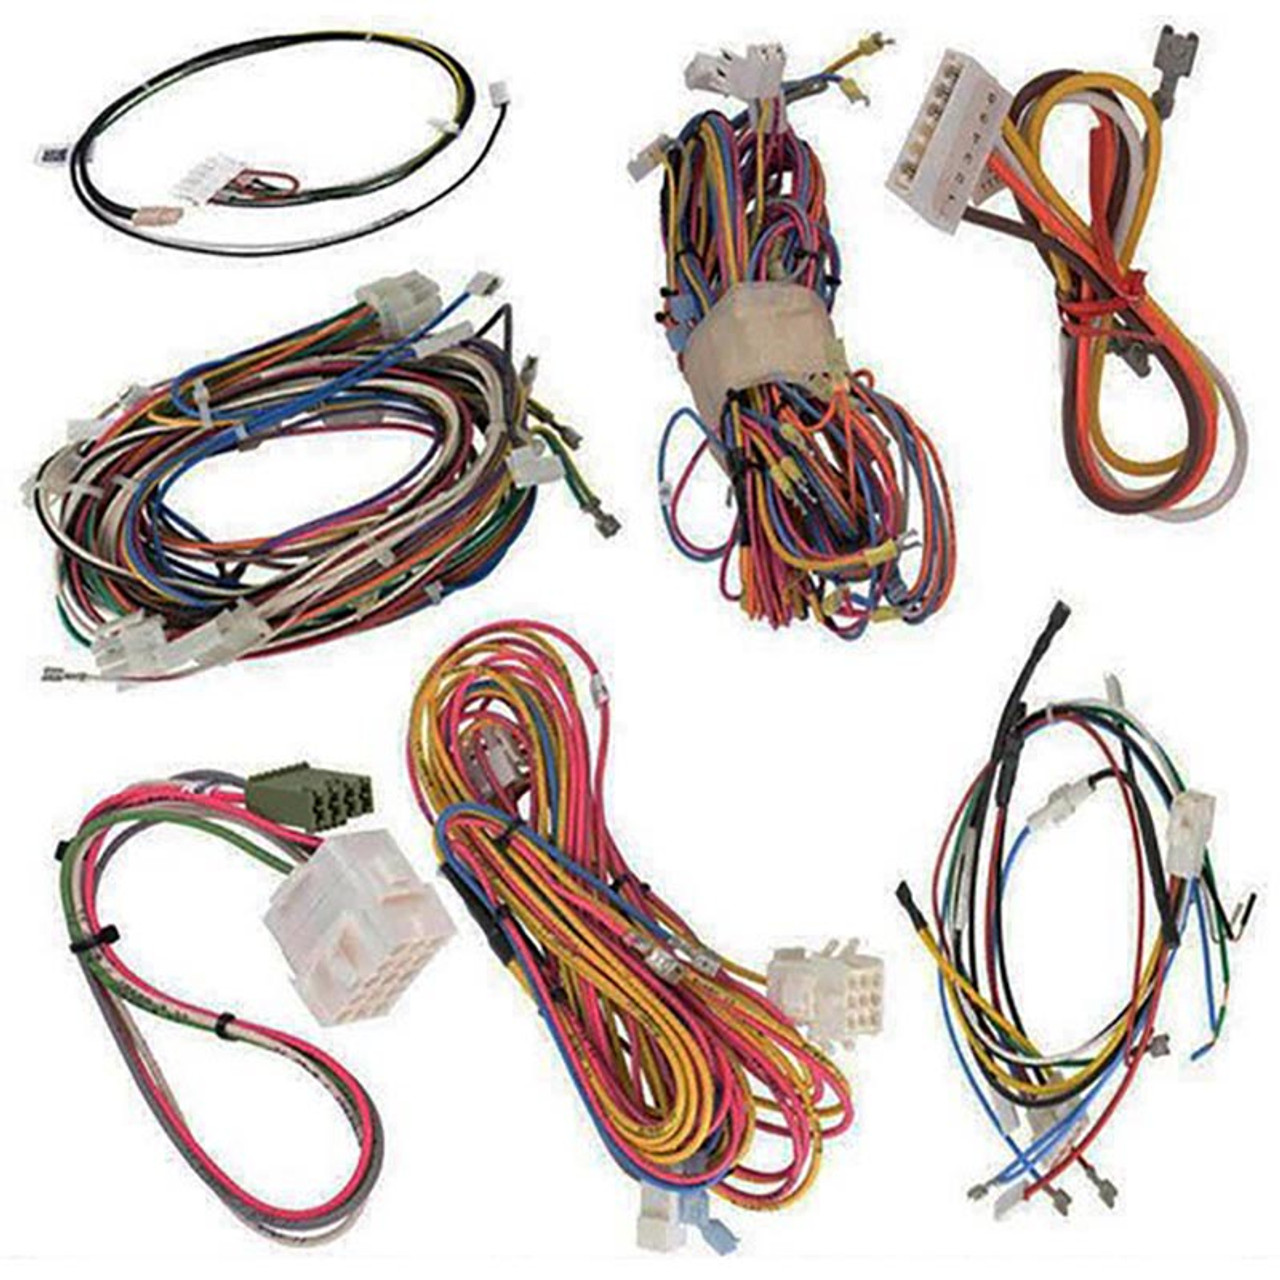 70m63 12 pin wiring harness 12 pin wire harness 582anw bryant 70m63__90727 1542233032 jpg?c=2&imbypass=on